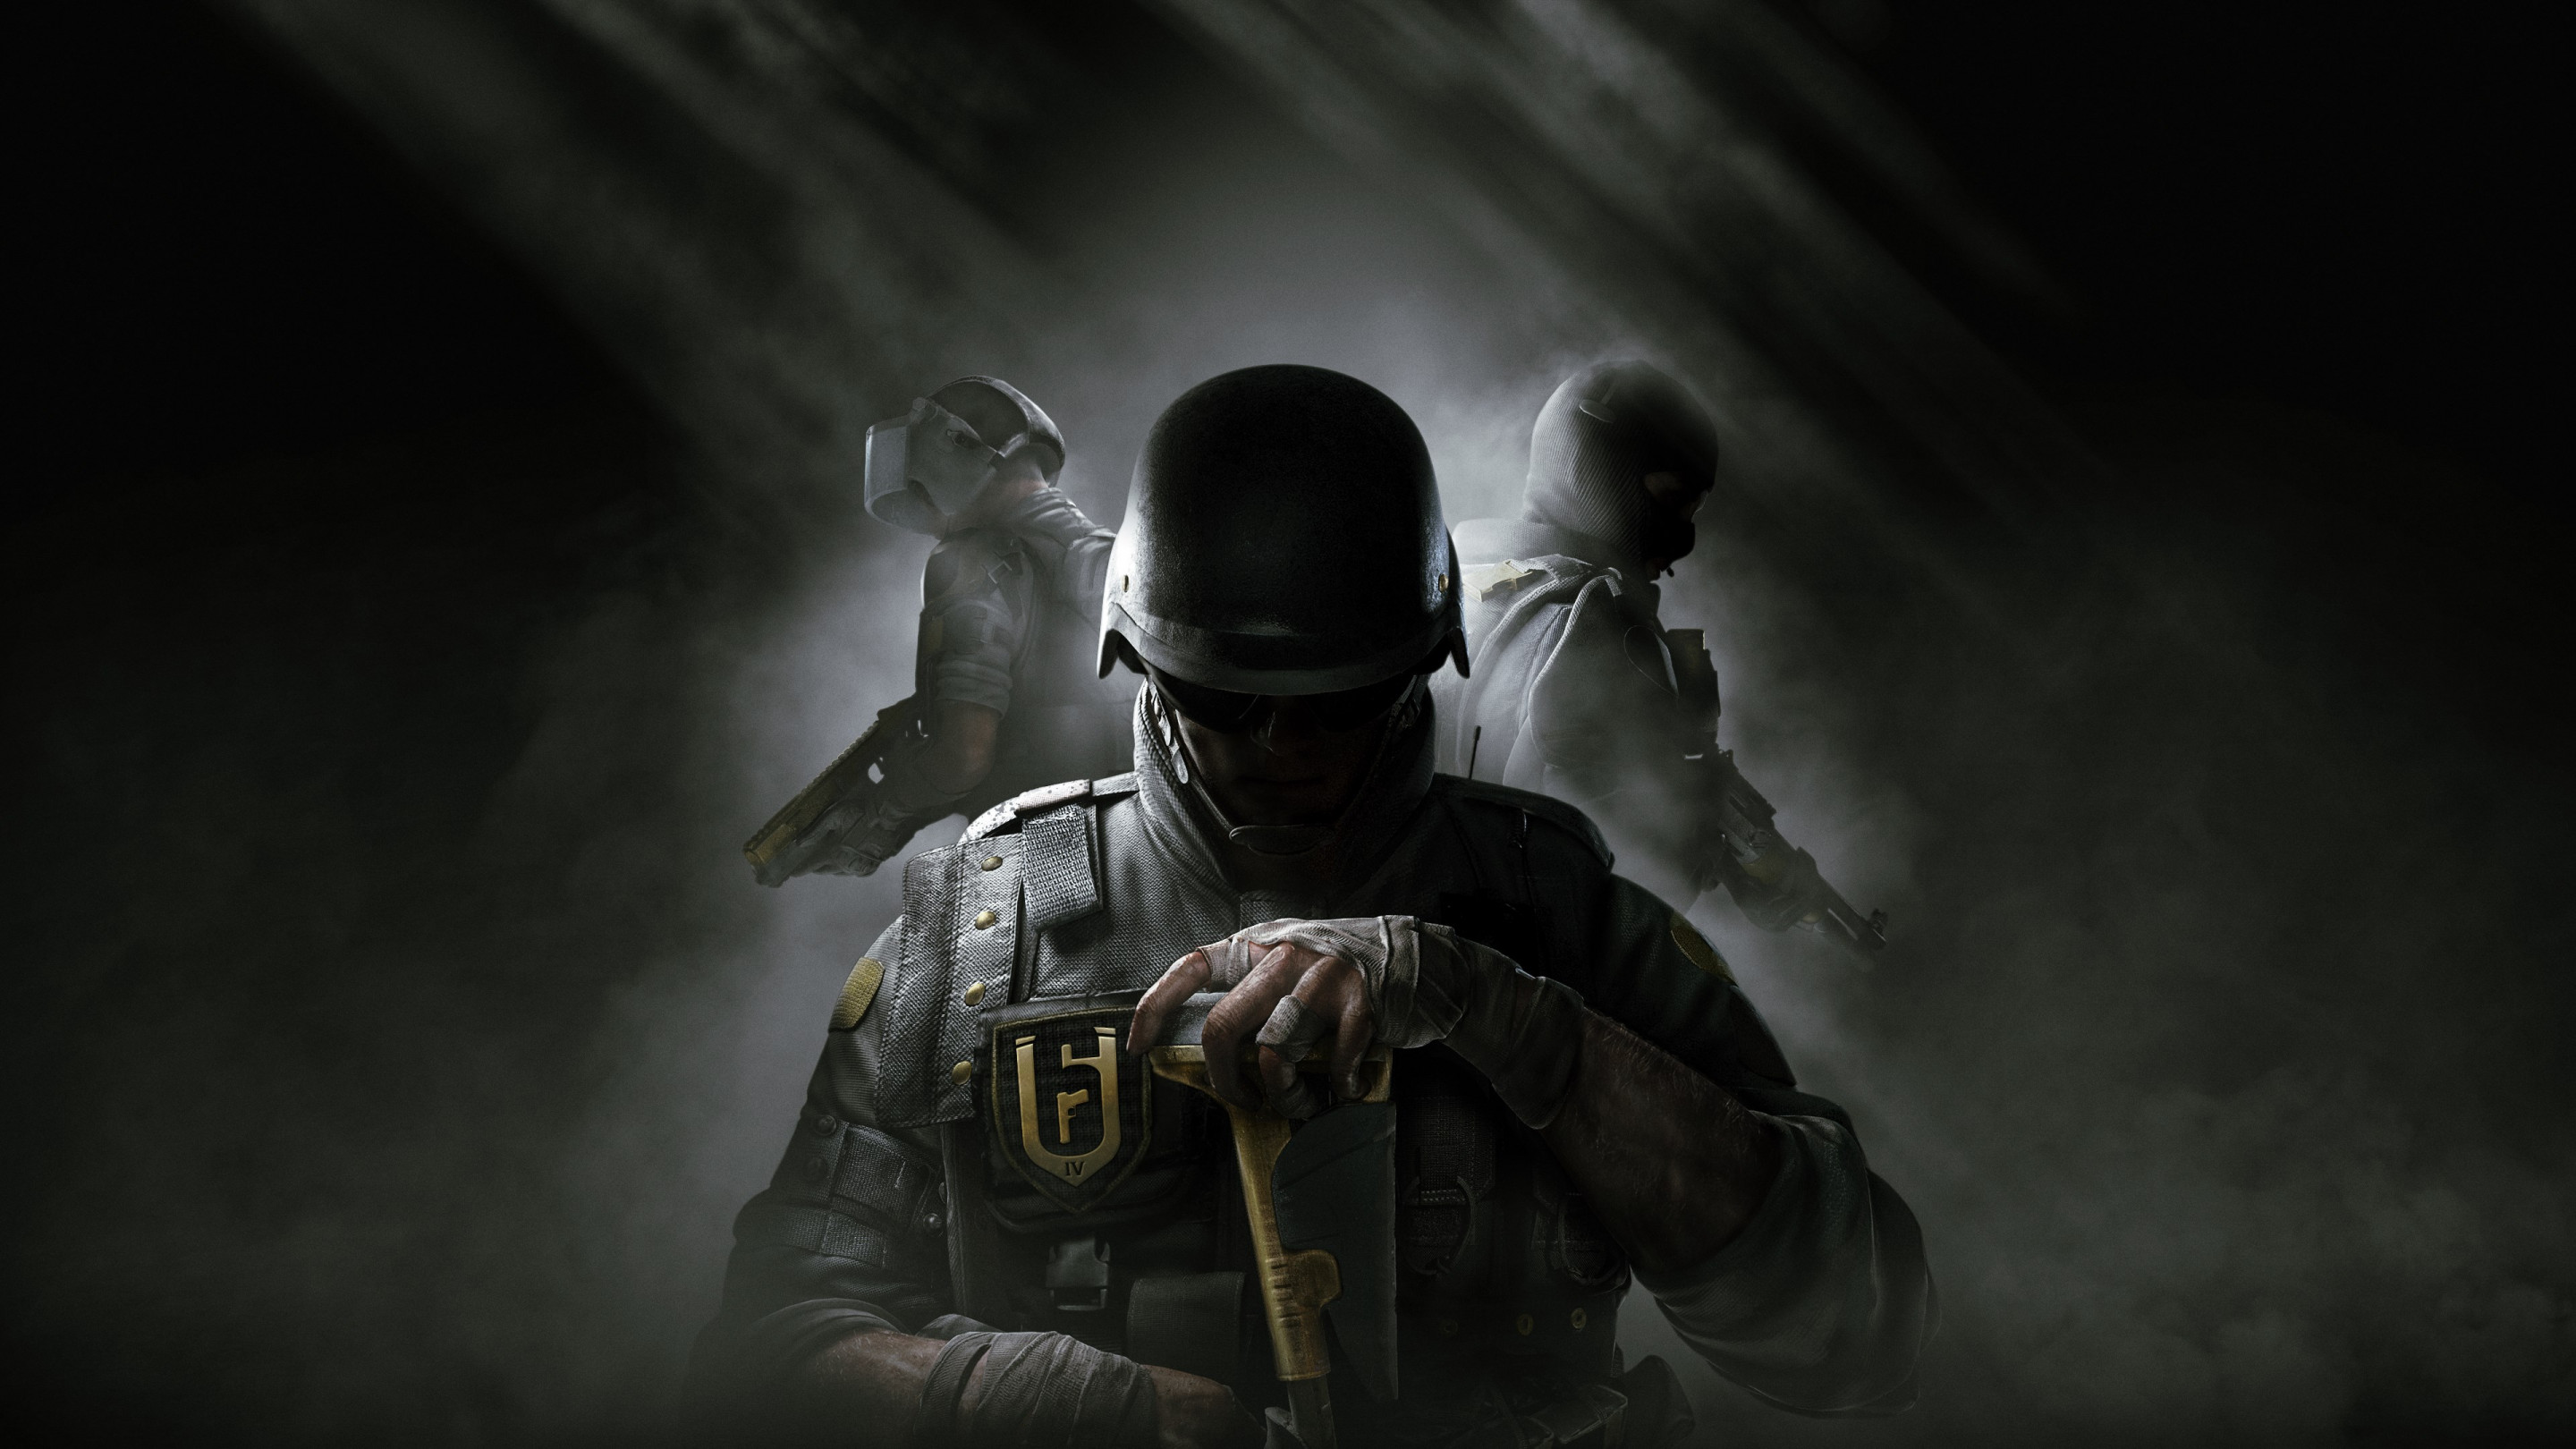 Rainbow Six Siege wallpaper 2880x1620